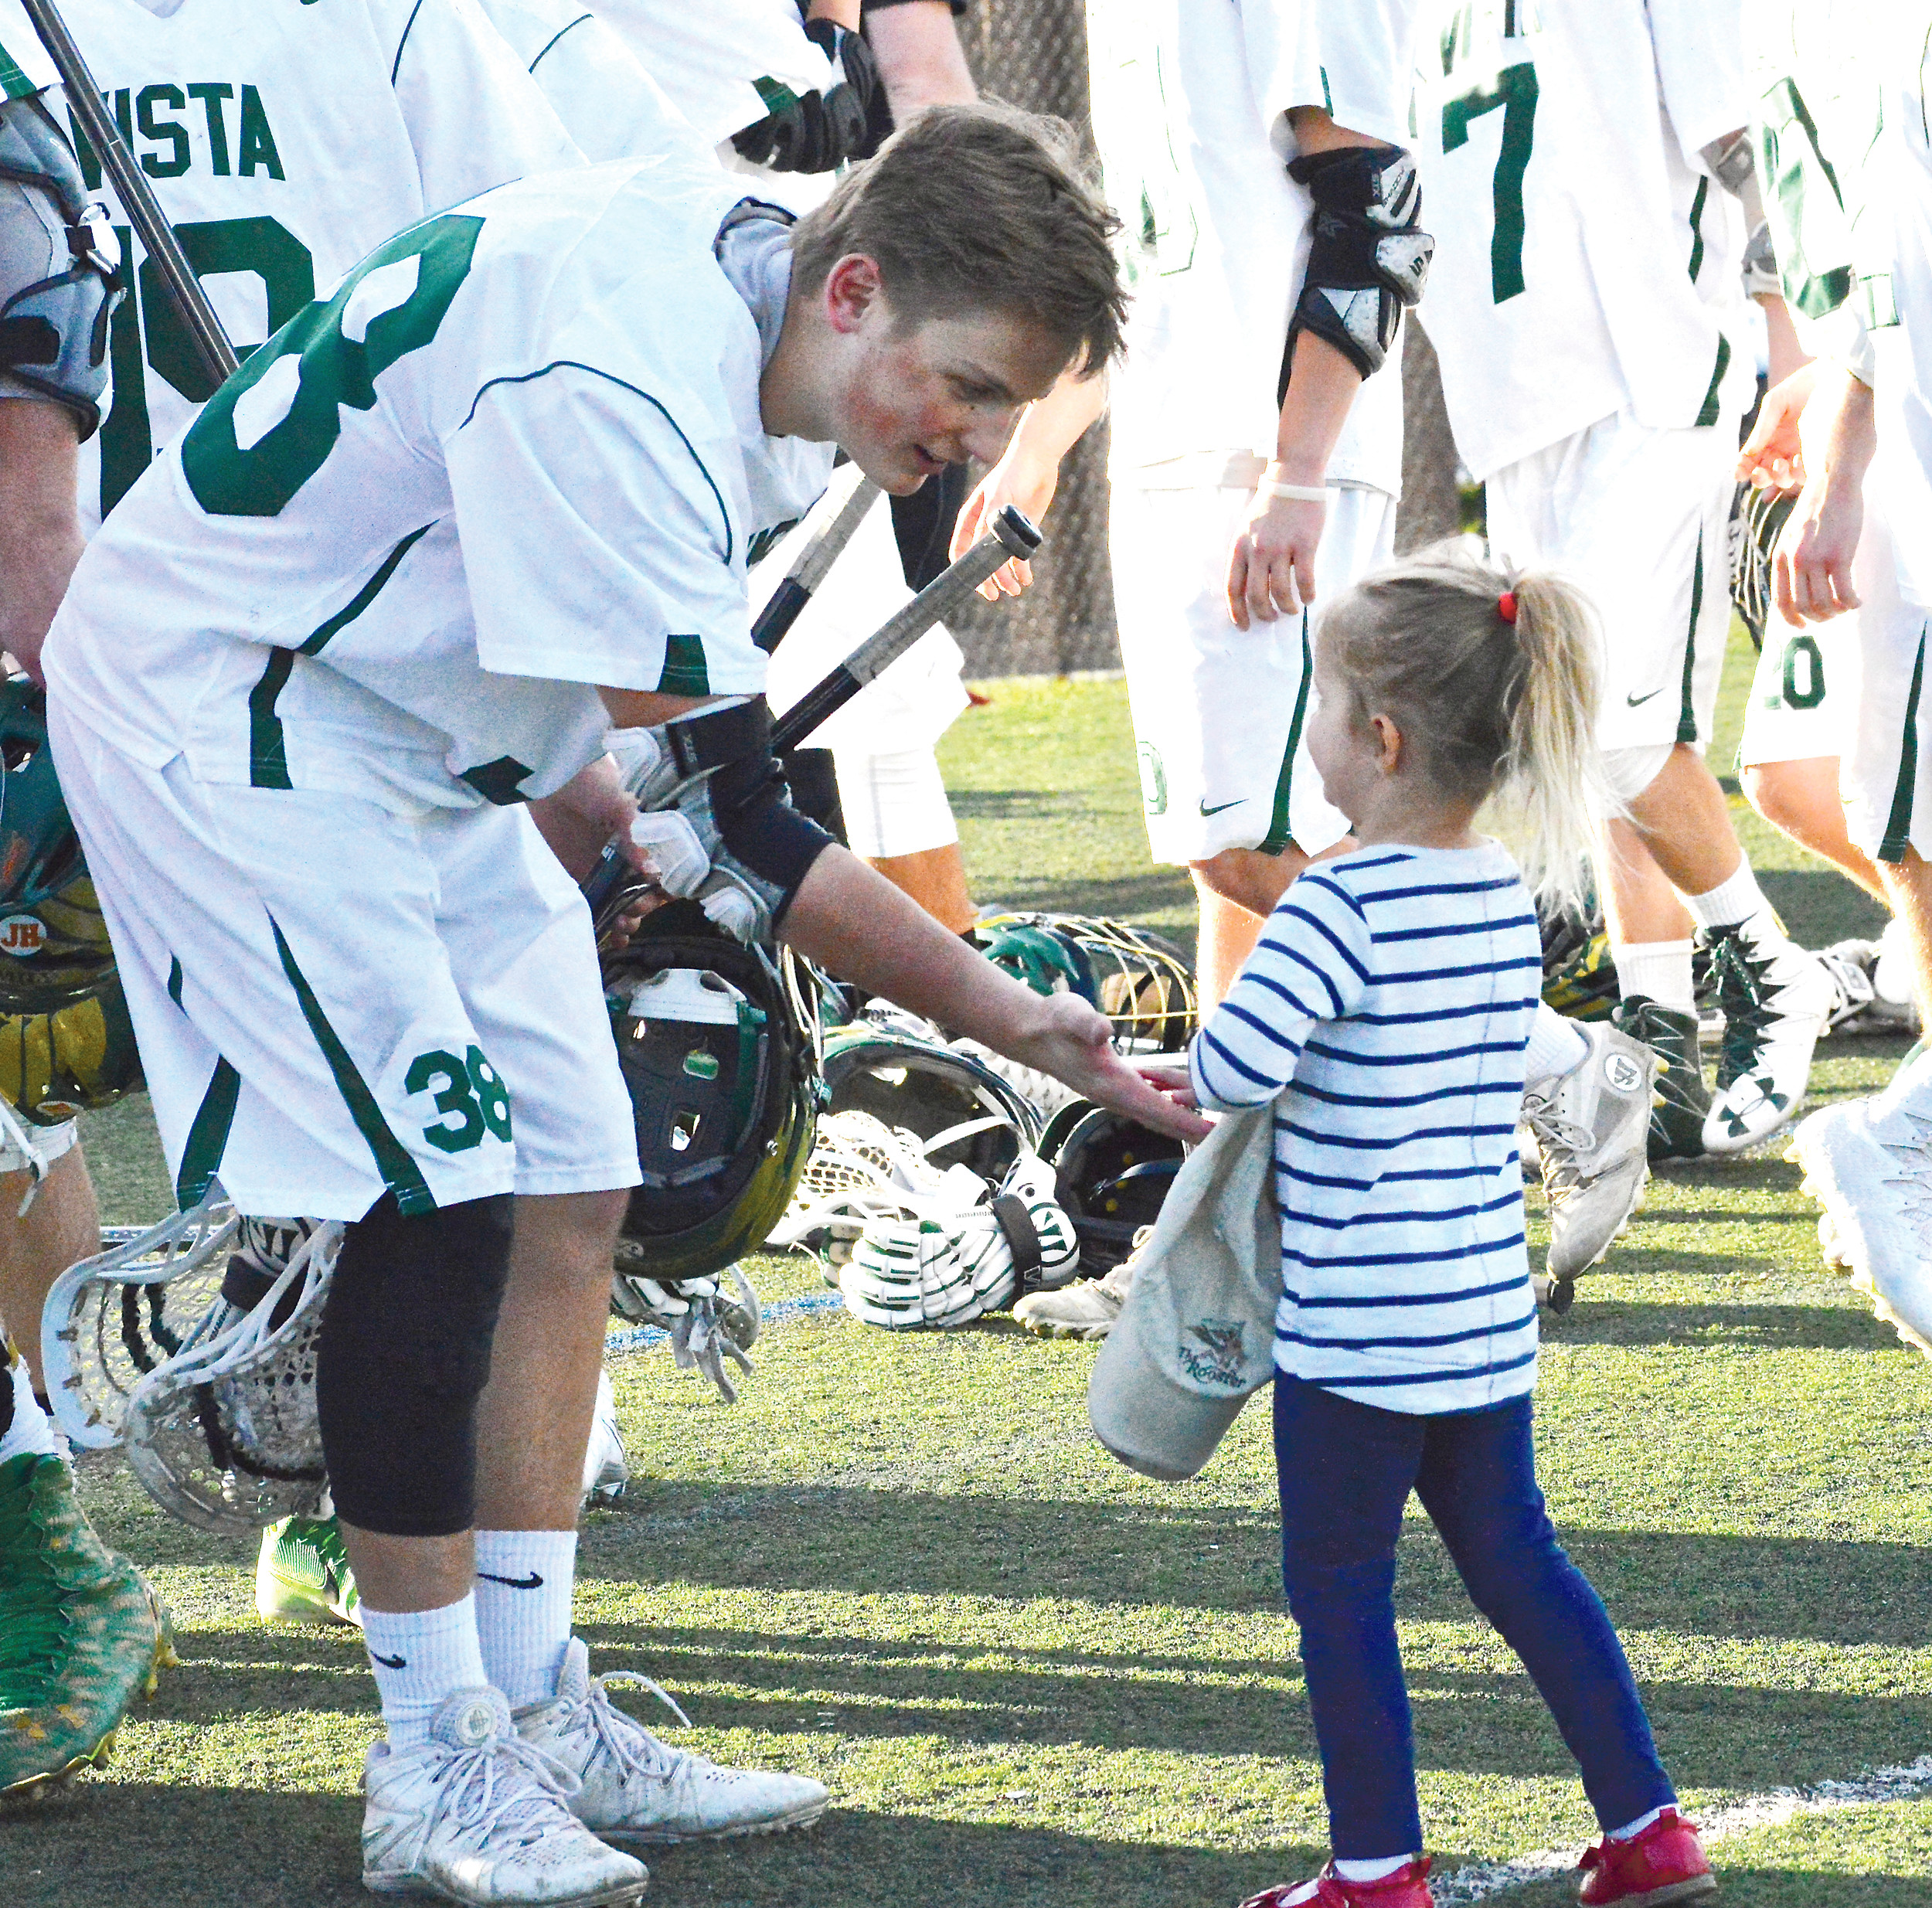 Vista Boys Lacrosse Team All About Family